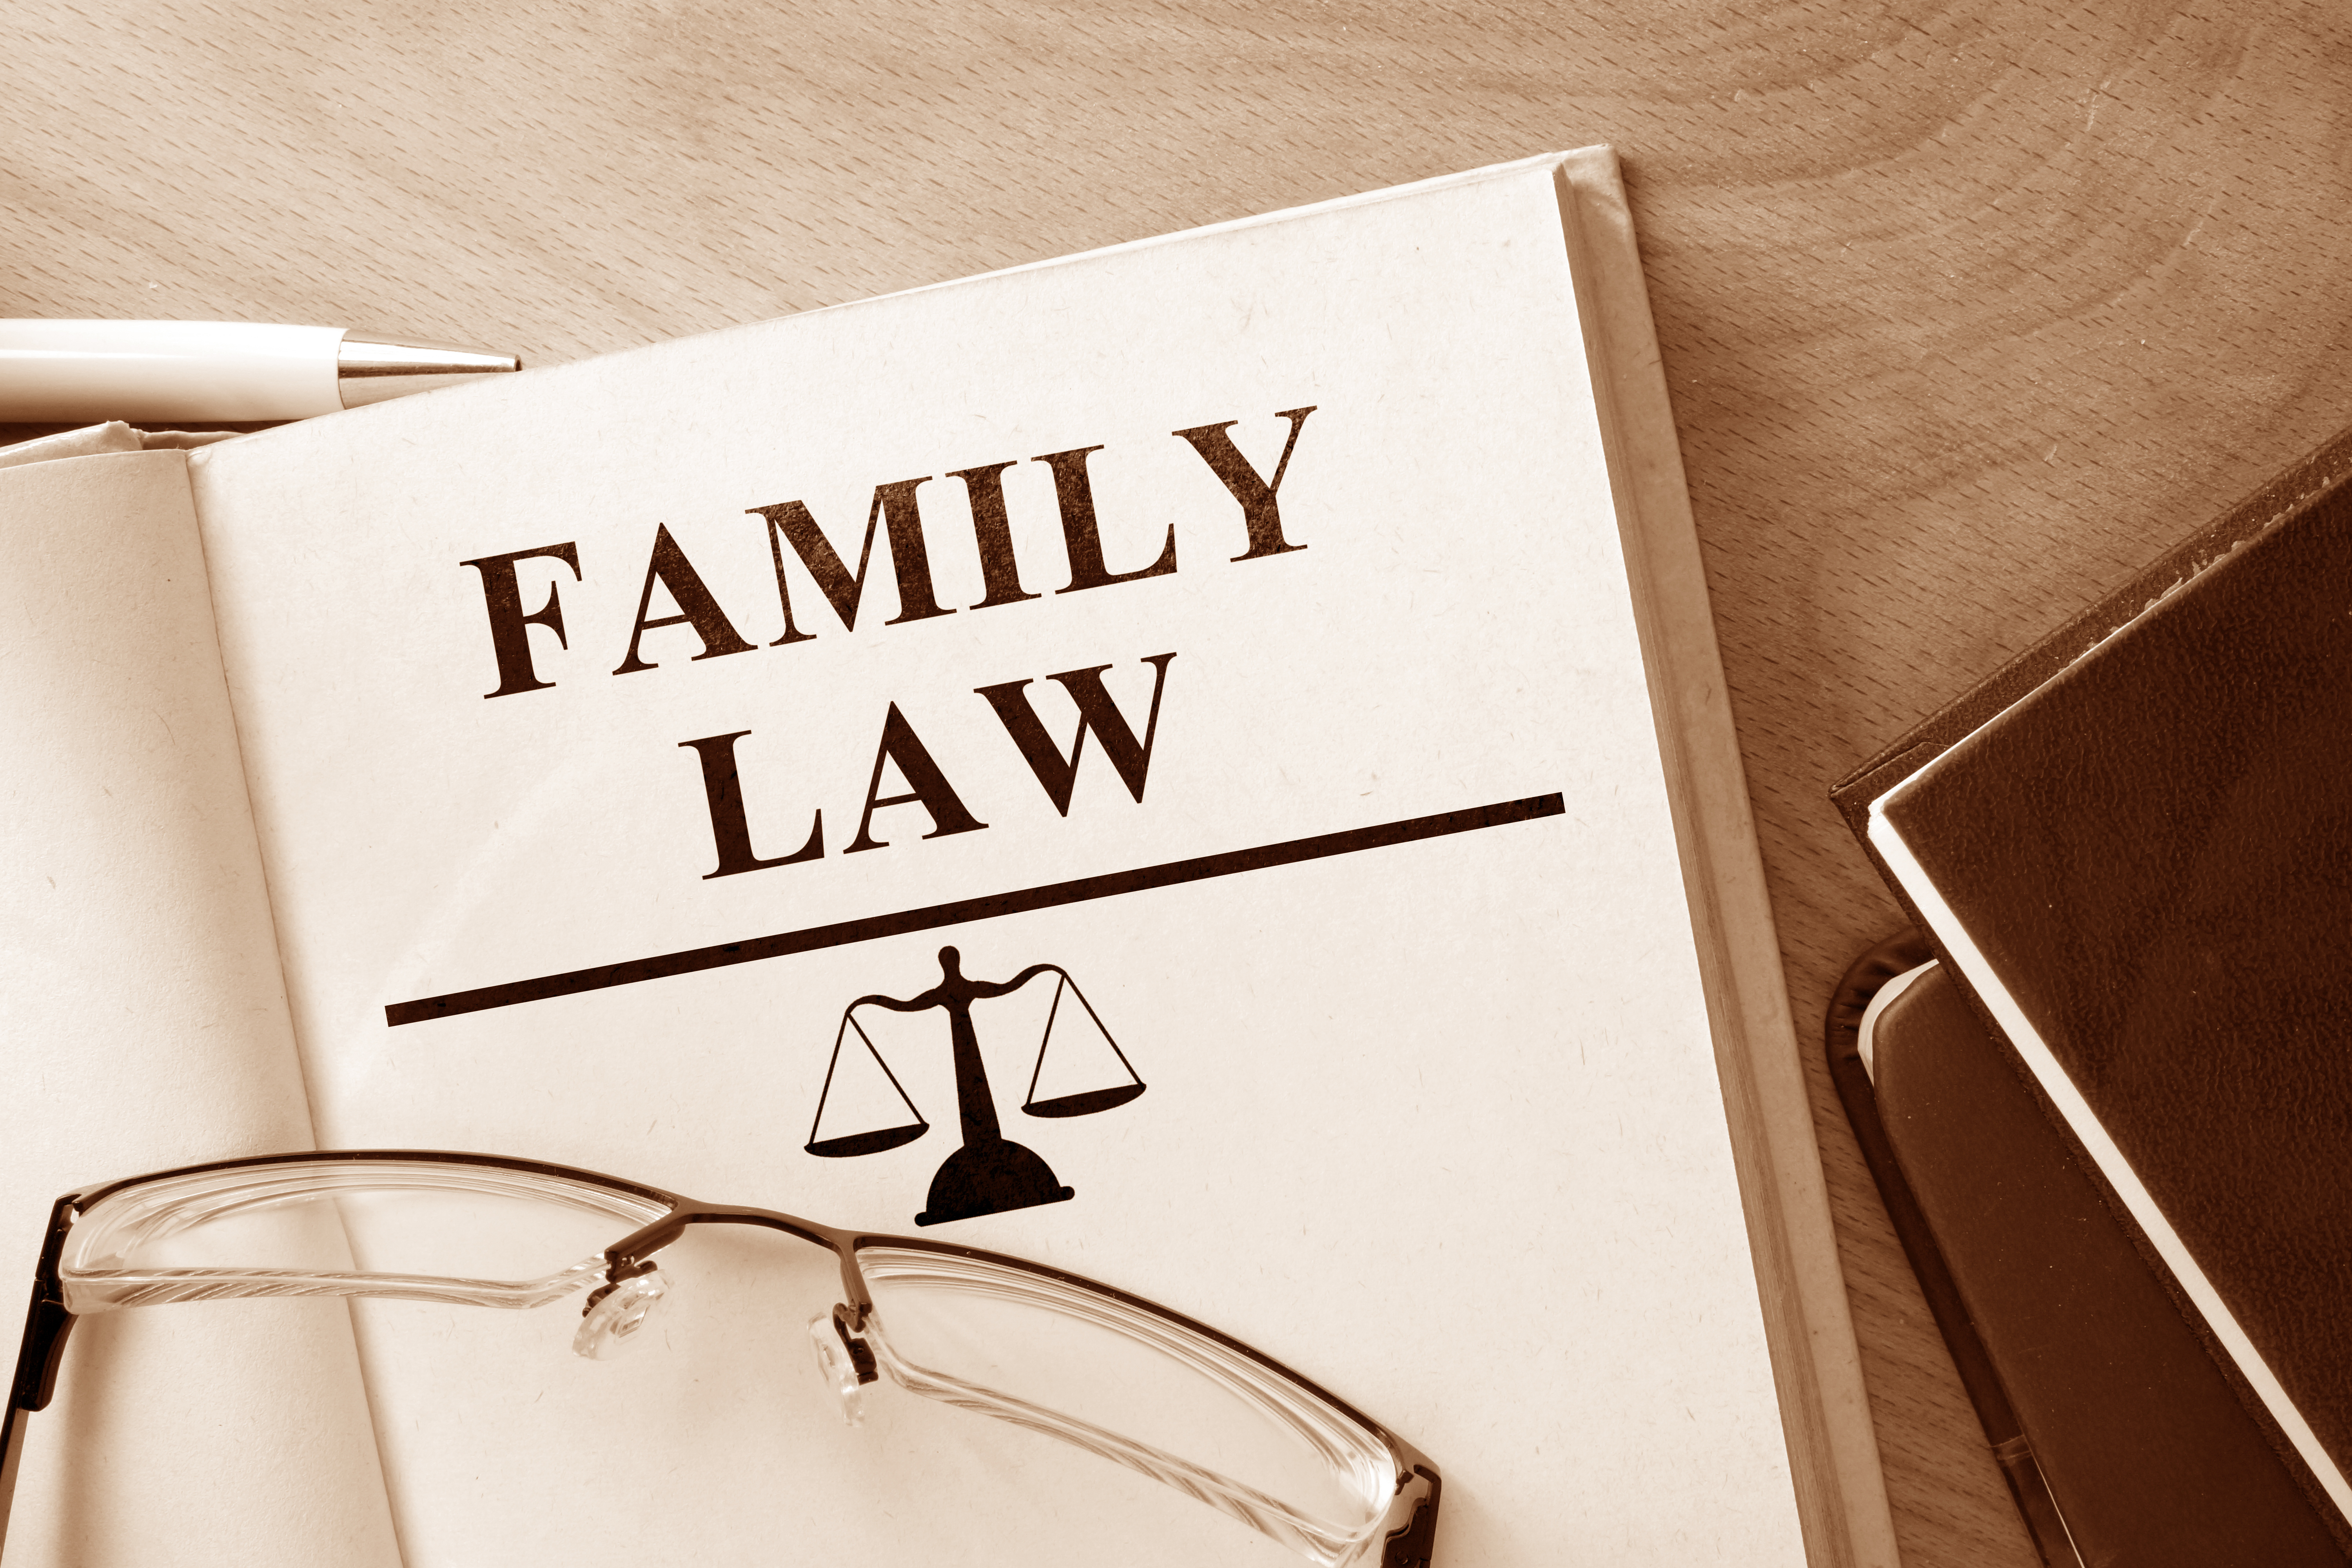 Family law lawyer archives huerta law firm family law el paso huerta law firm solutioingenieria Images